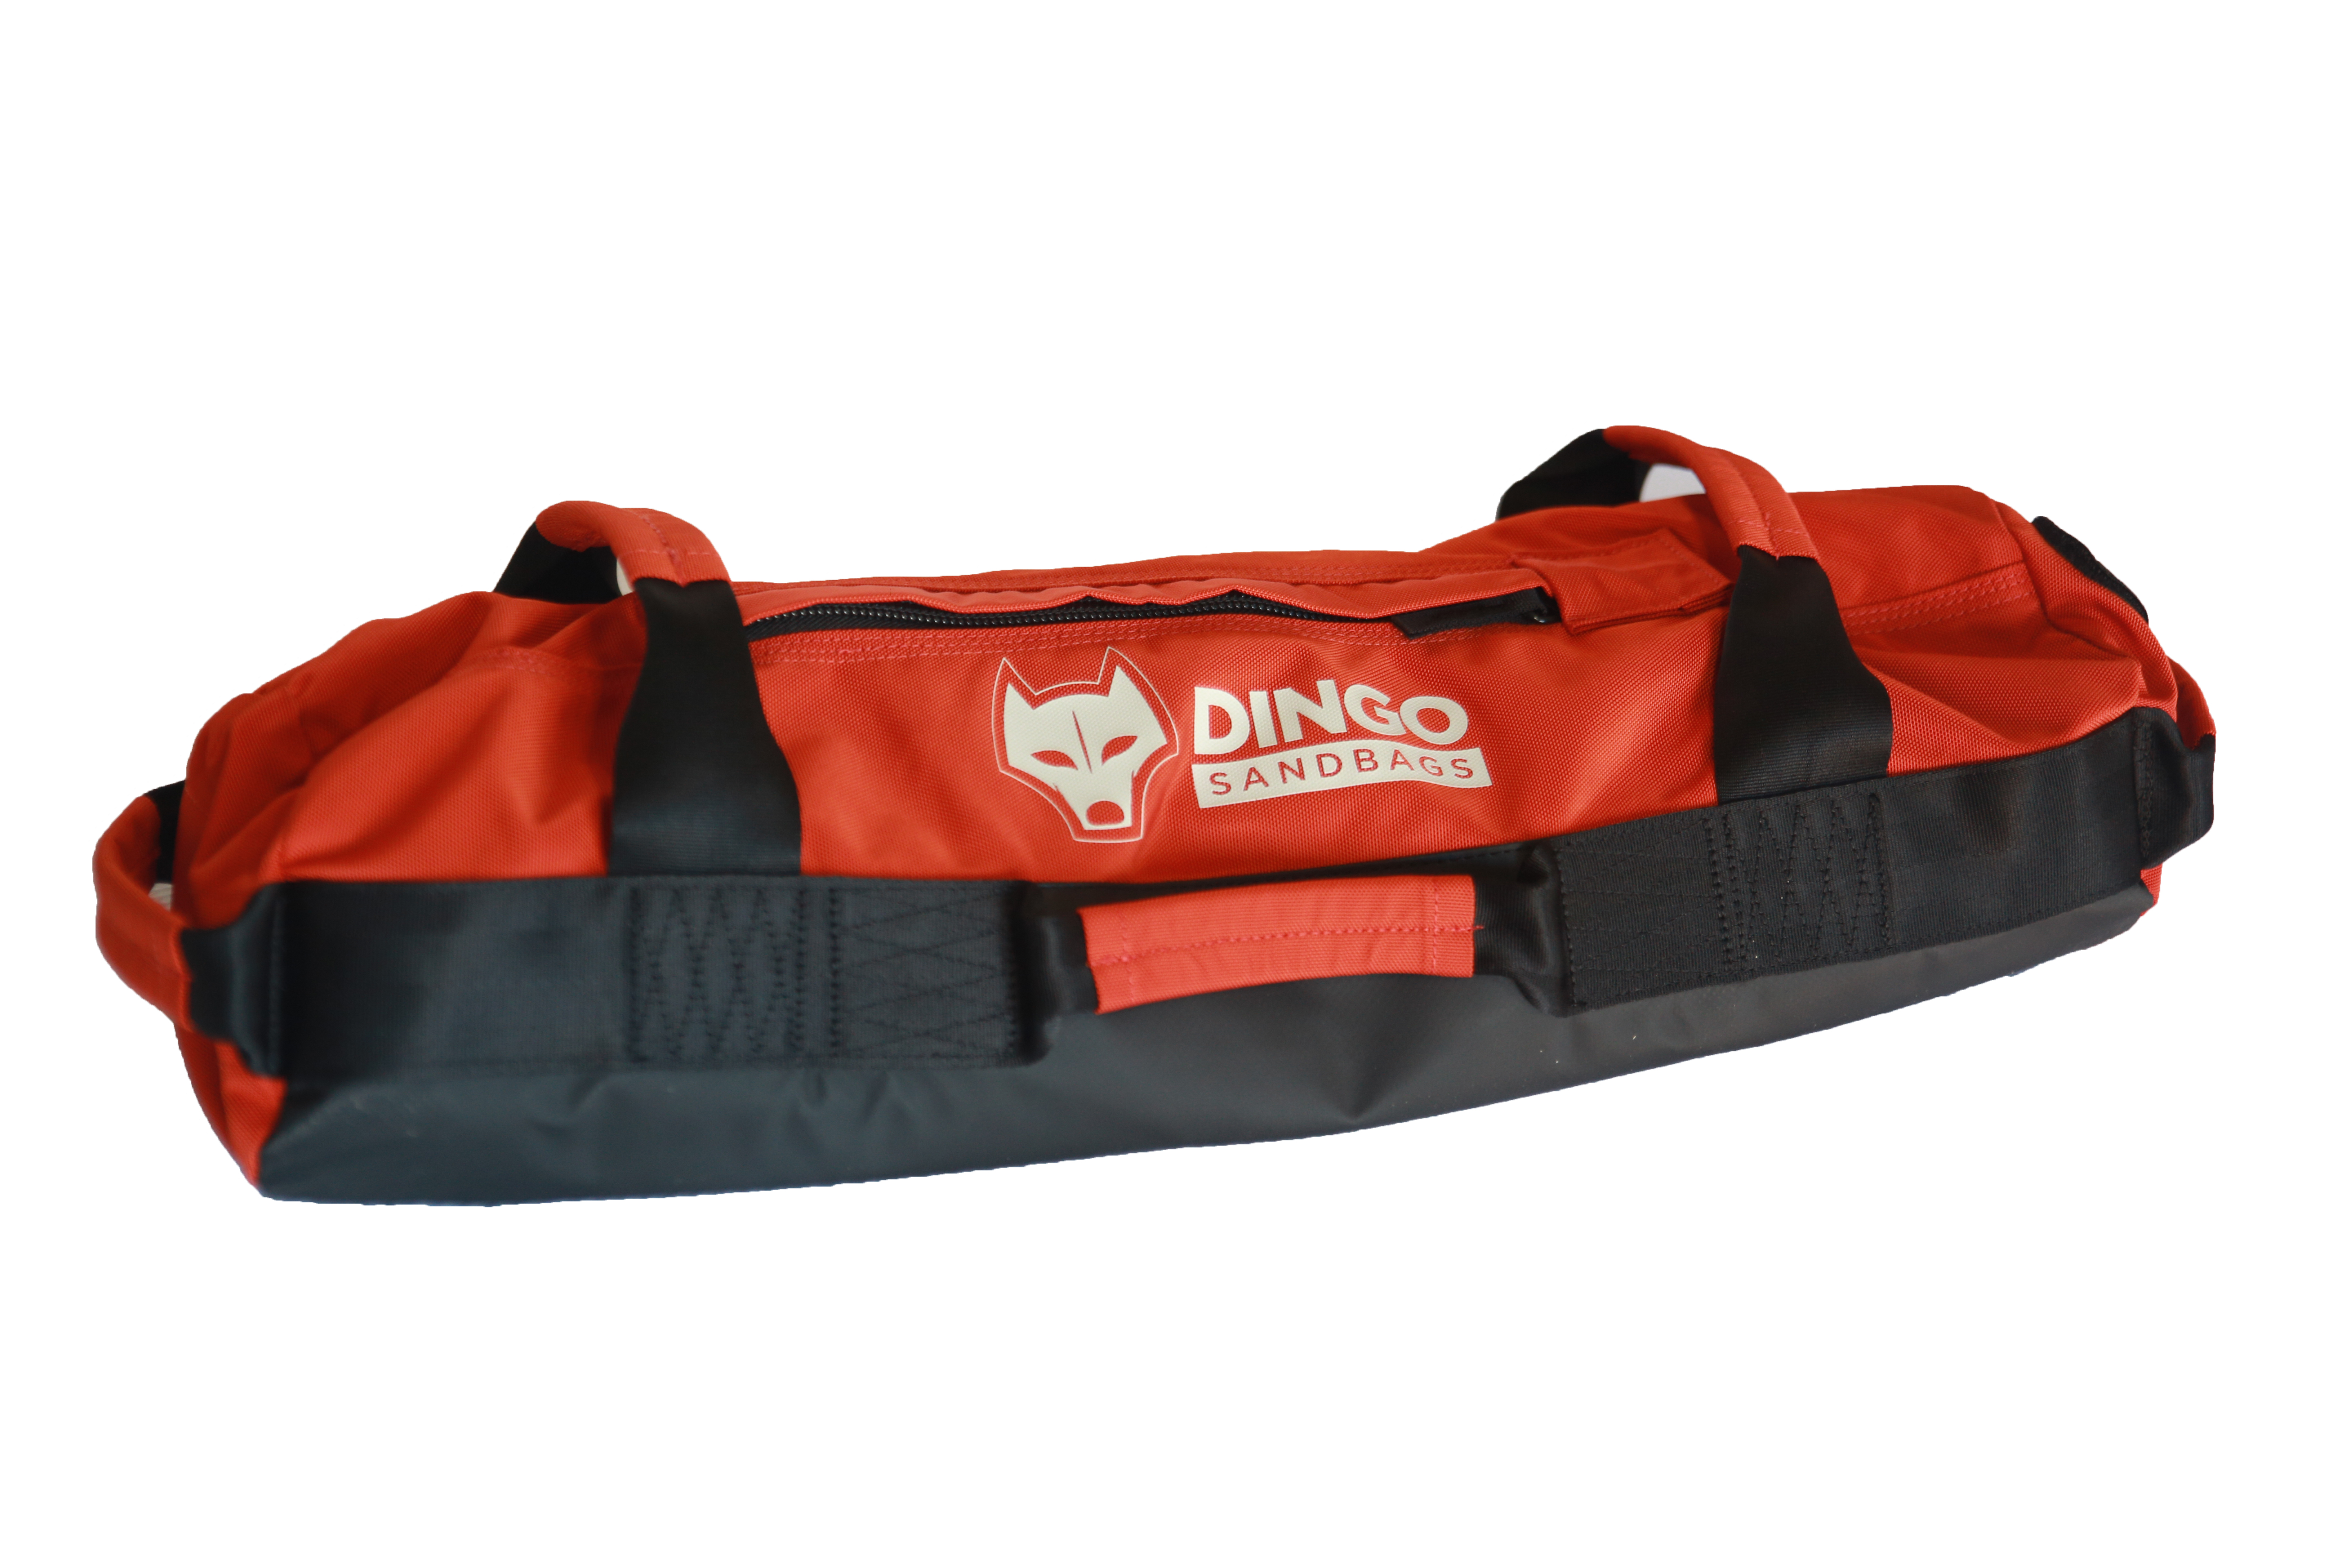 Small Sandbag 7.5-12.5kg (with black tarpaulin base)